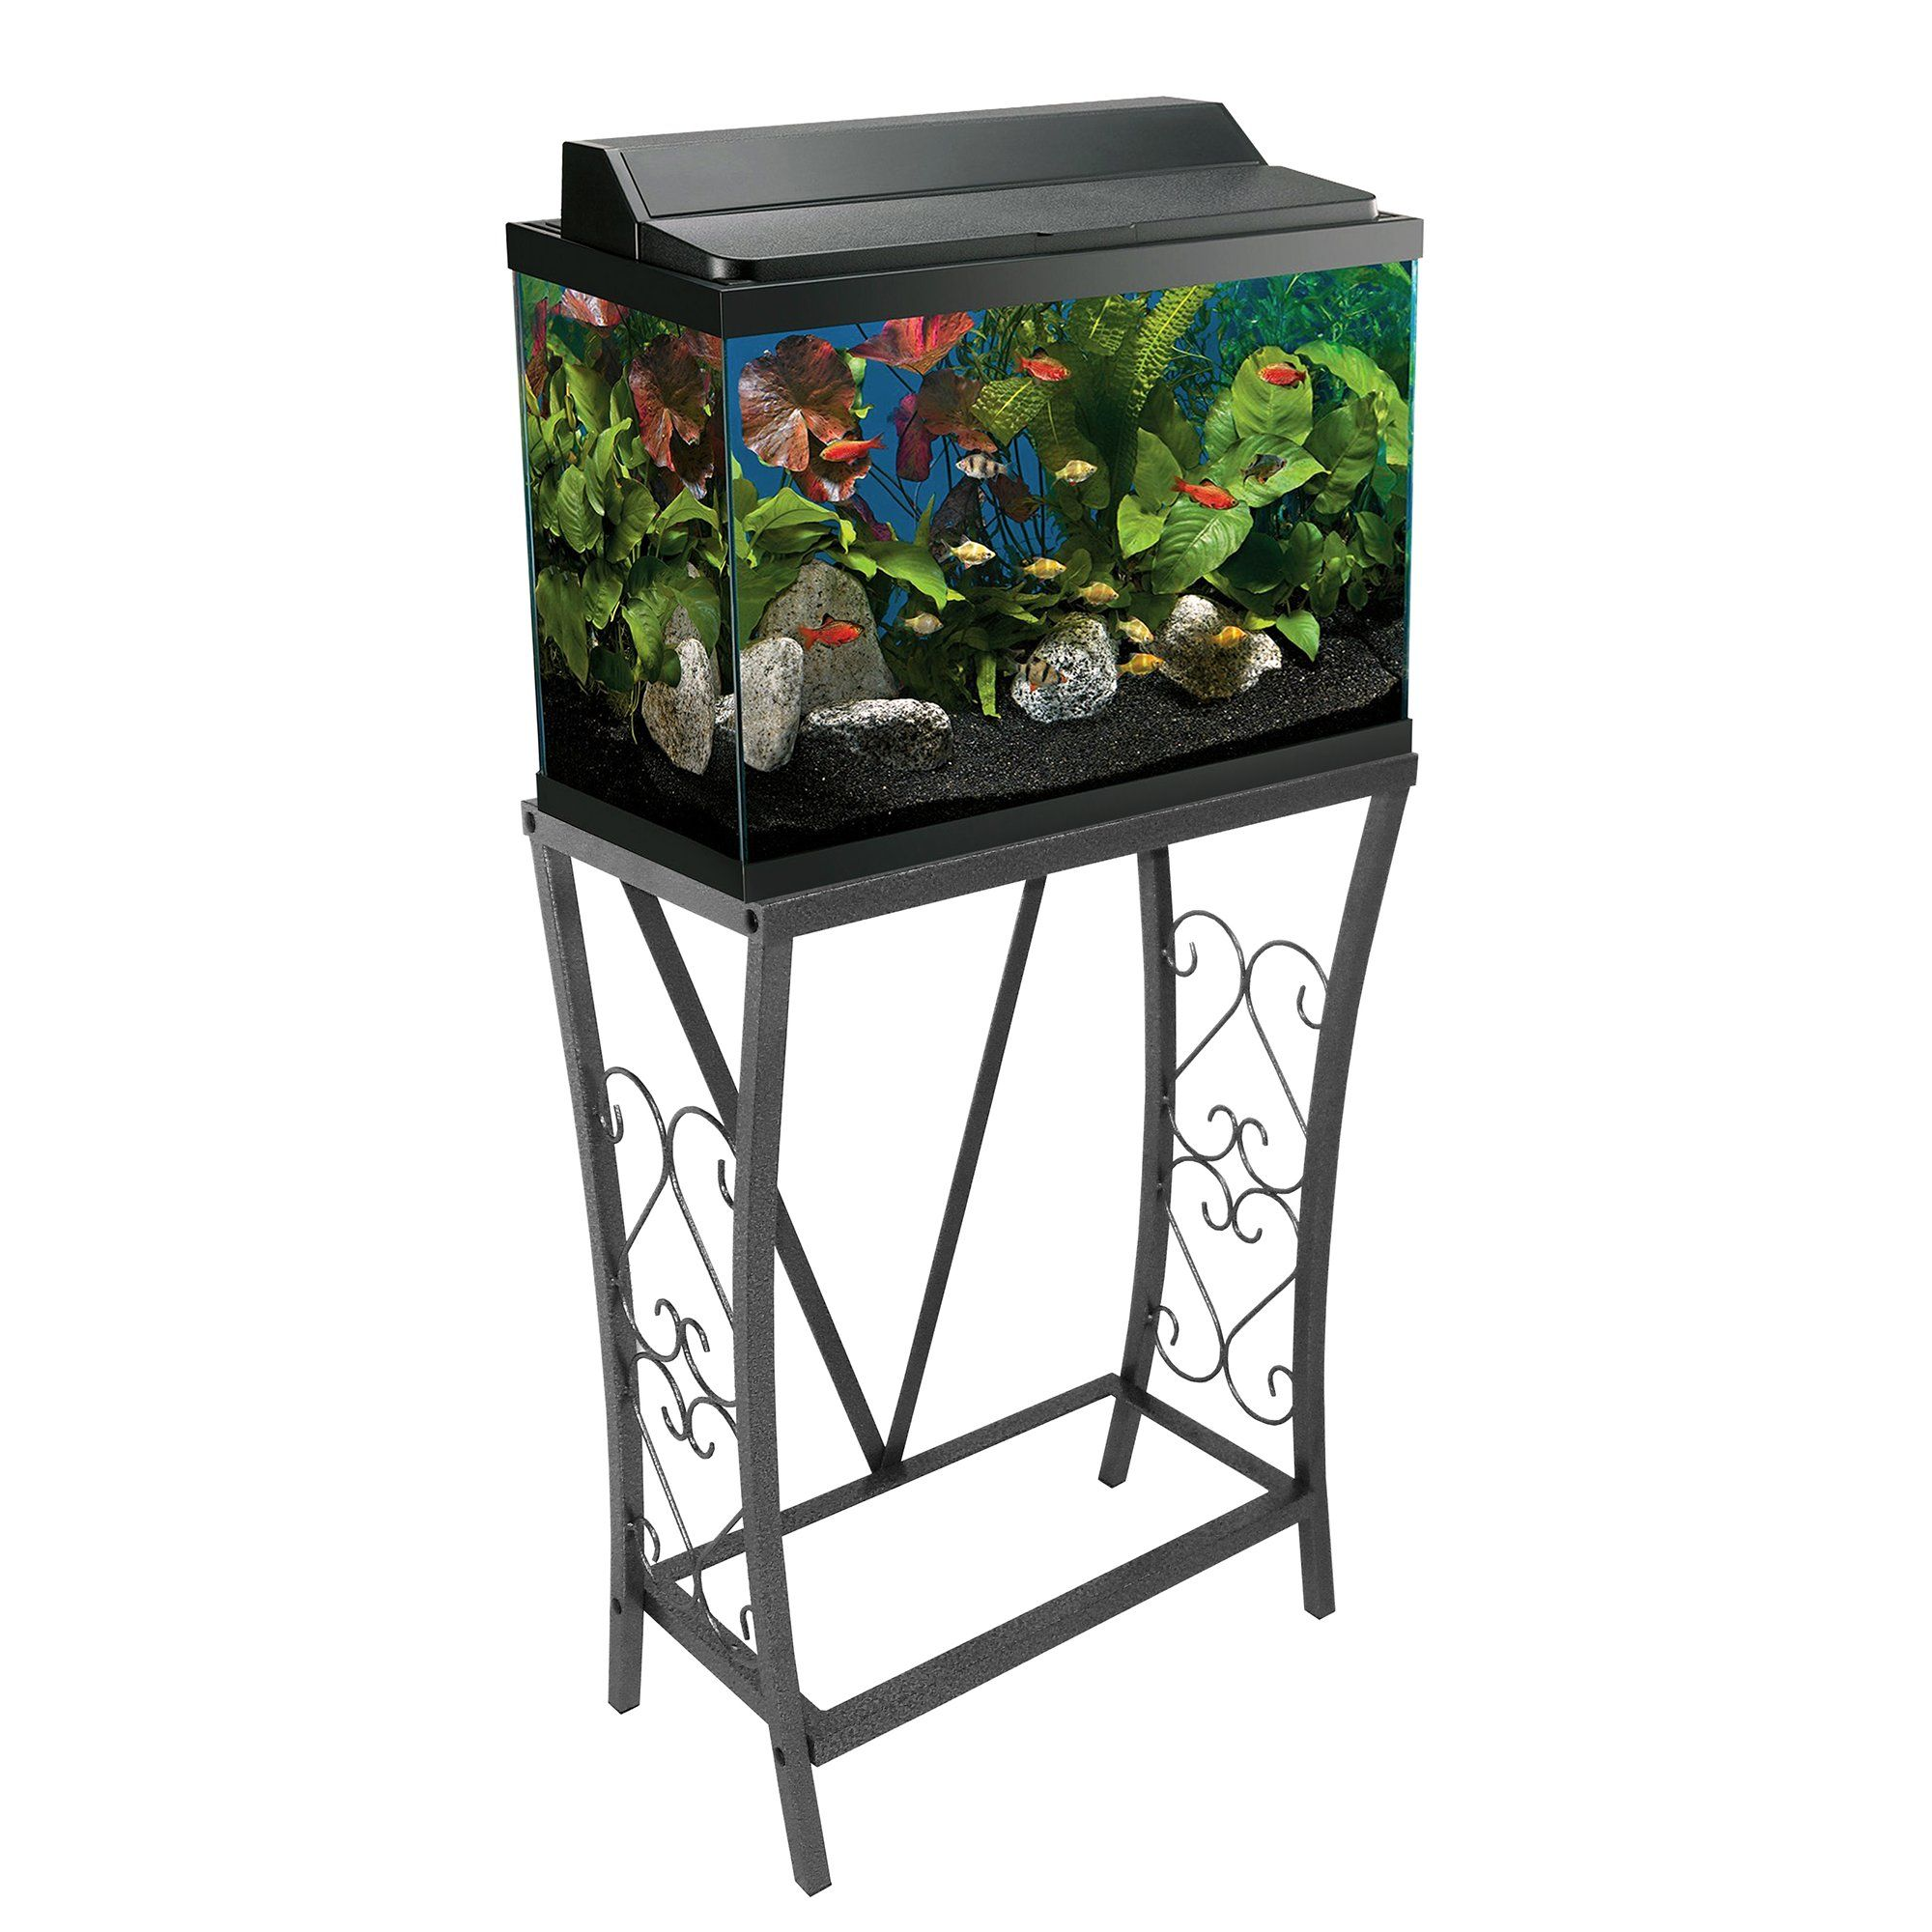 For 10 Gallon Aquariums This Affordable Yet Classic Designed Aquarium Stand Will Give Your Aquarium Added Aquarium Stand Fish Tank Stand Best Aquarium Fish